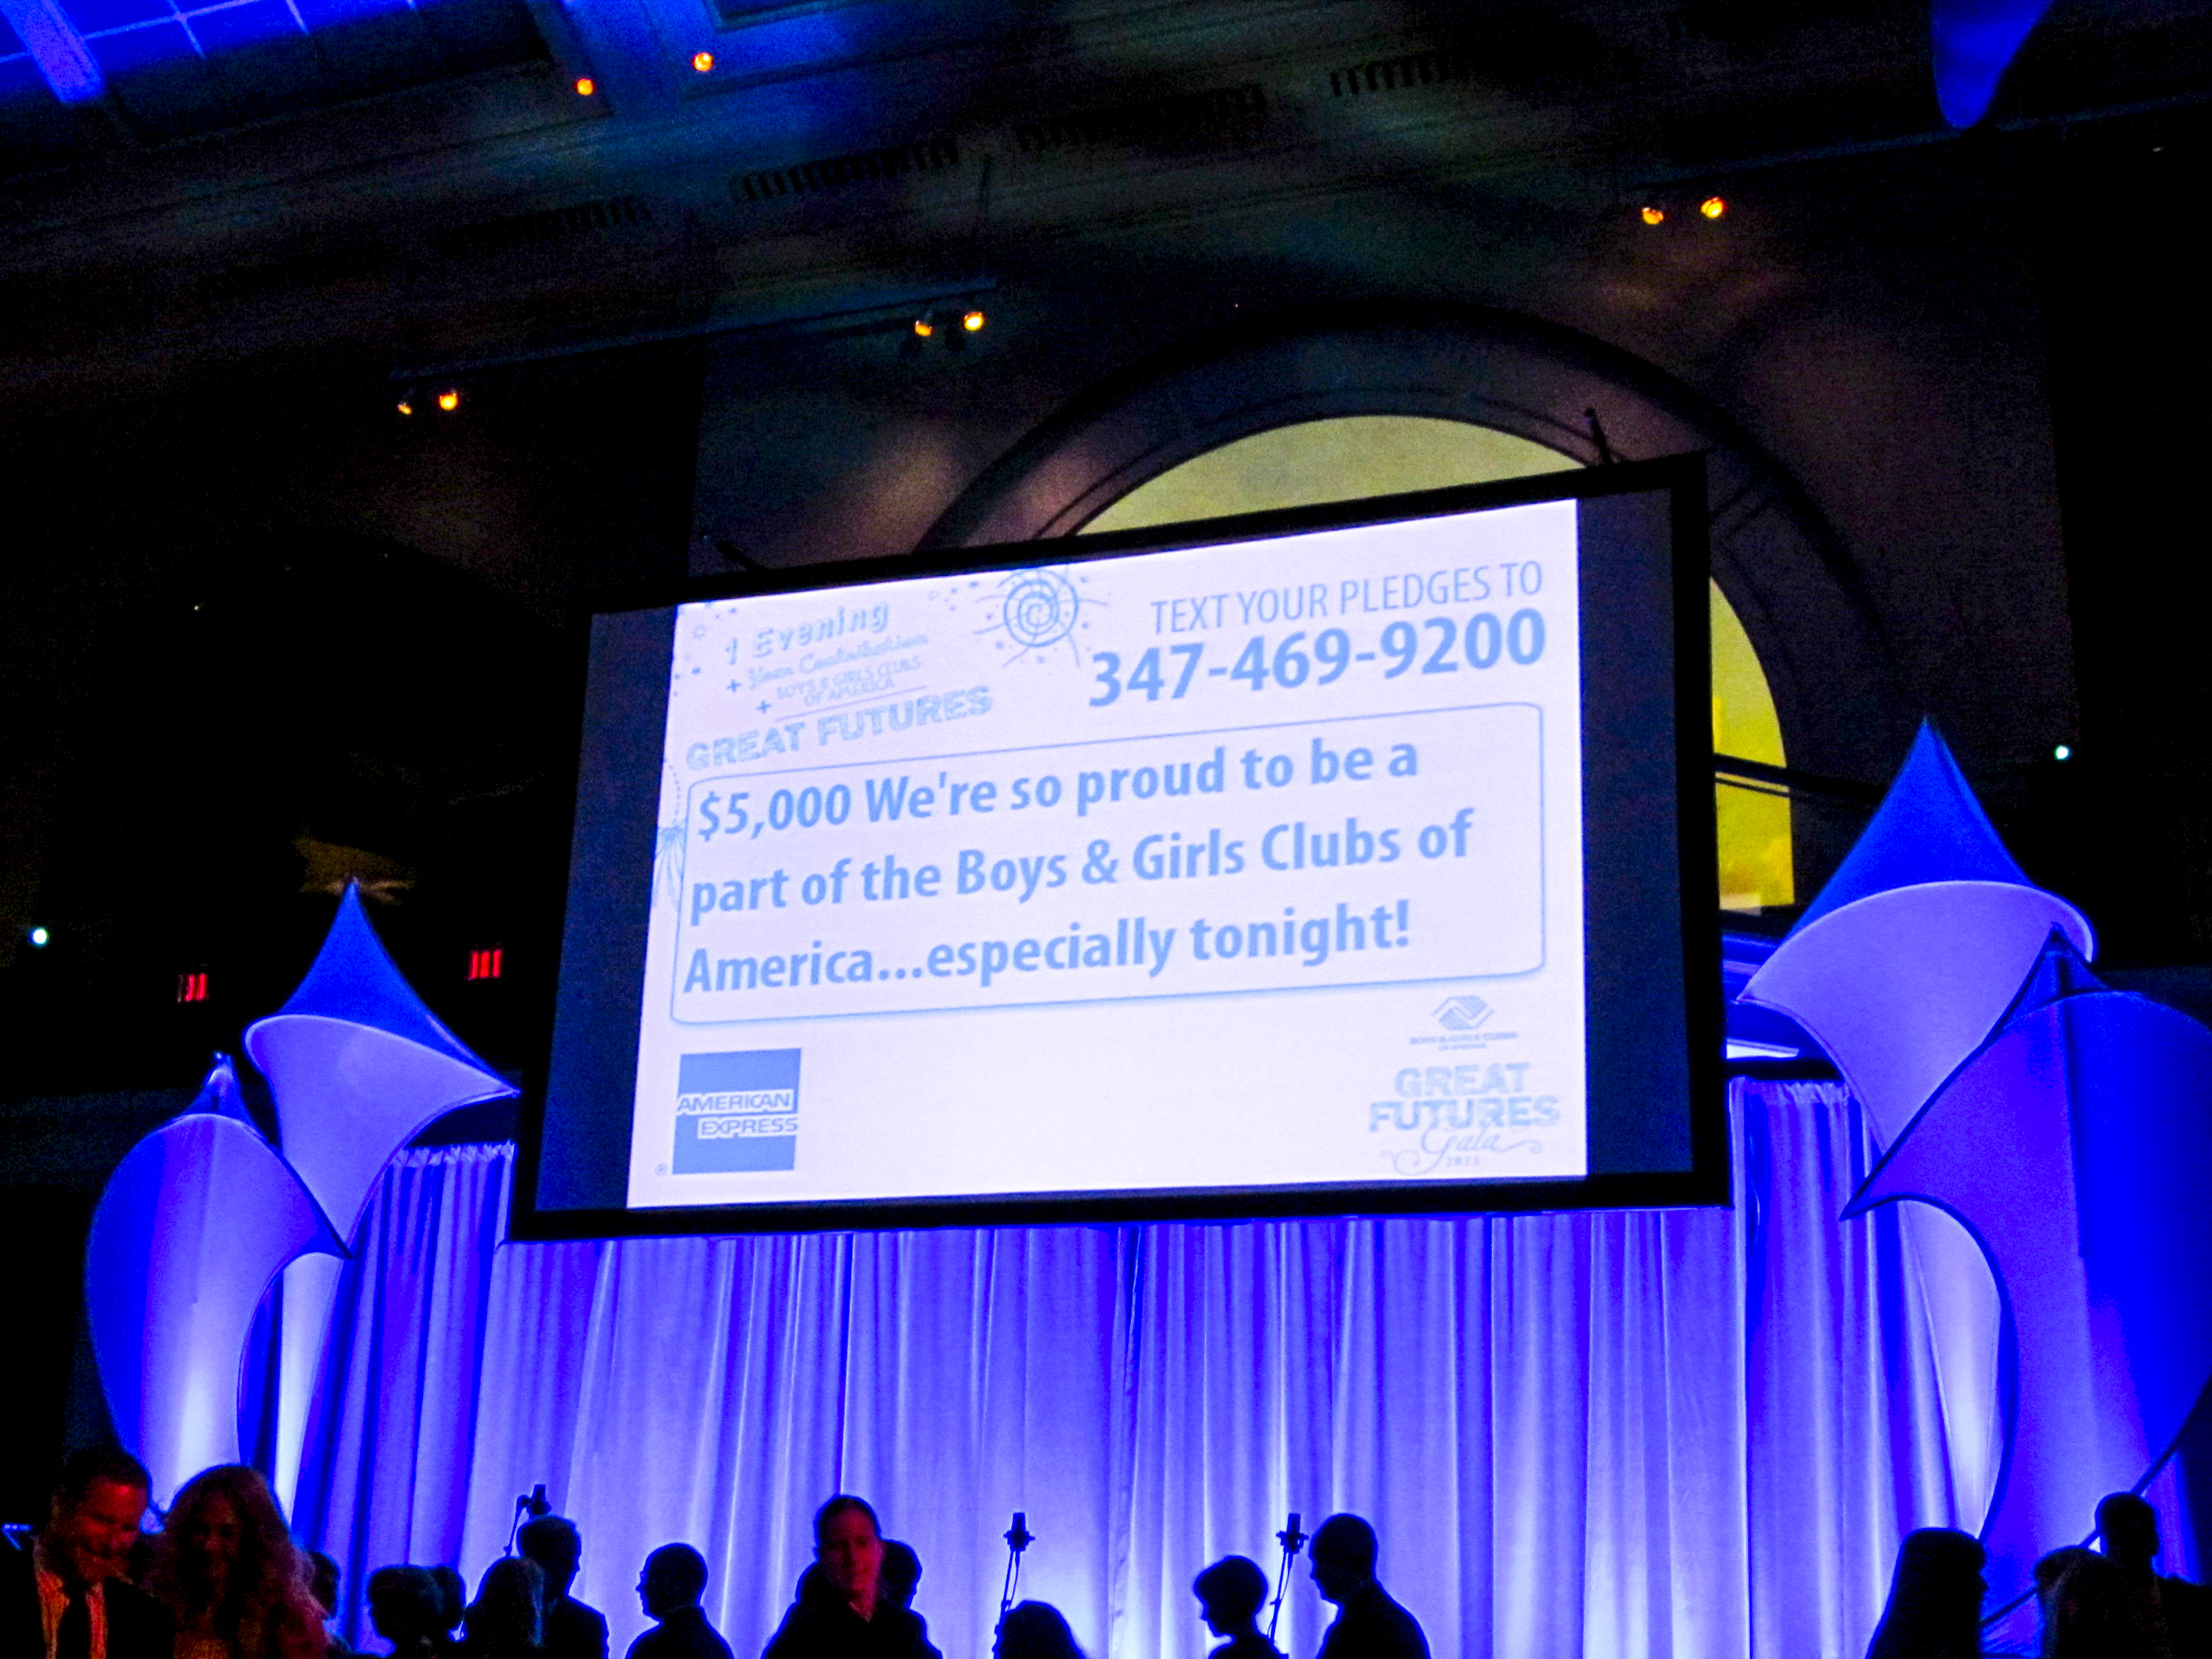 ceci-new-york-gives-back-boys-and-girls-club-of-america-great-futures-gala-2011-invitations-party-decor-museum-of-natural-history-event-space-venue-13.jpg